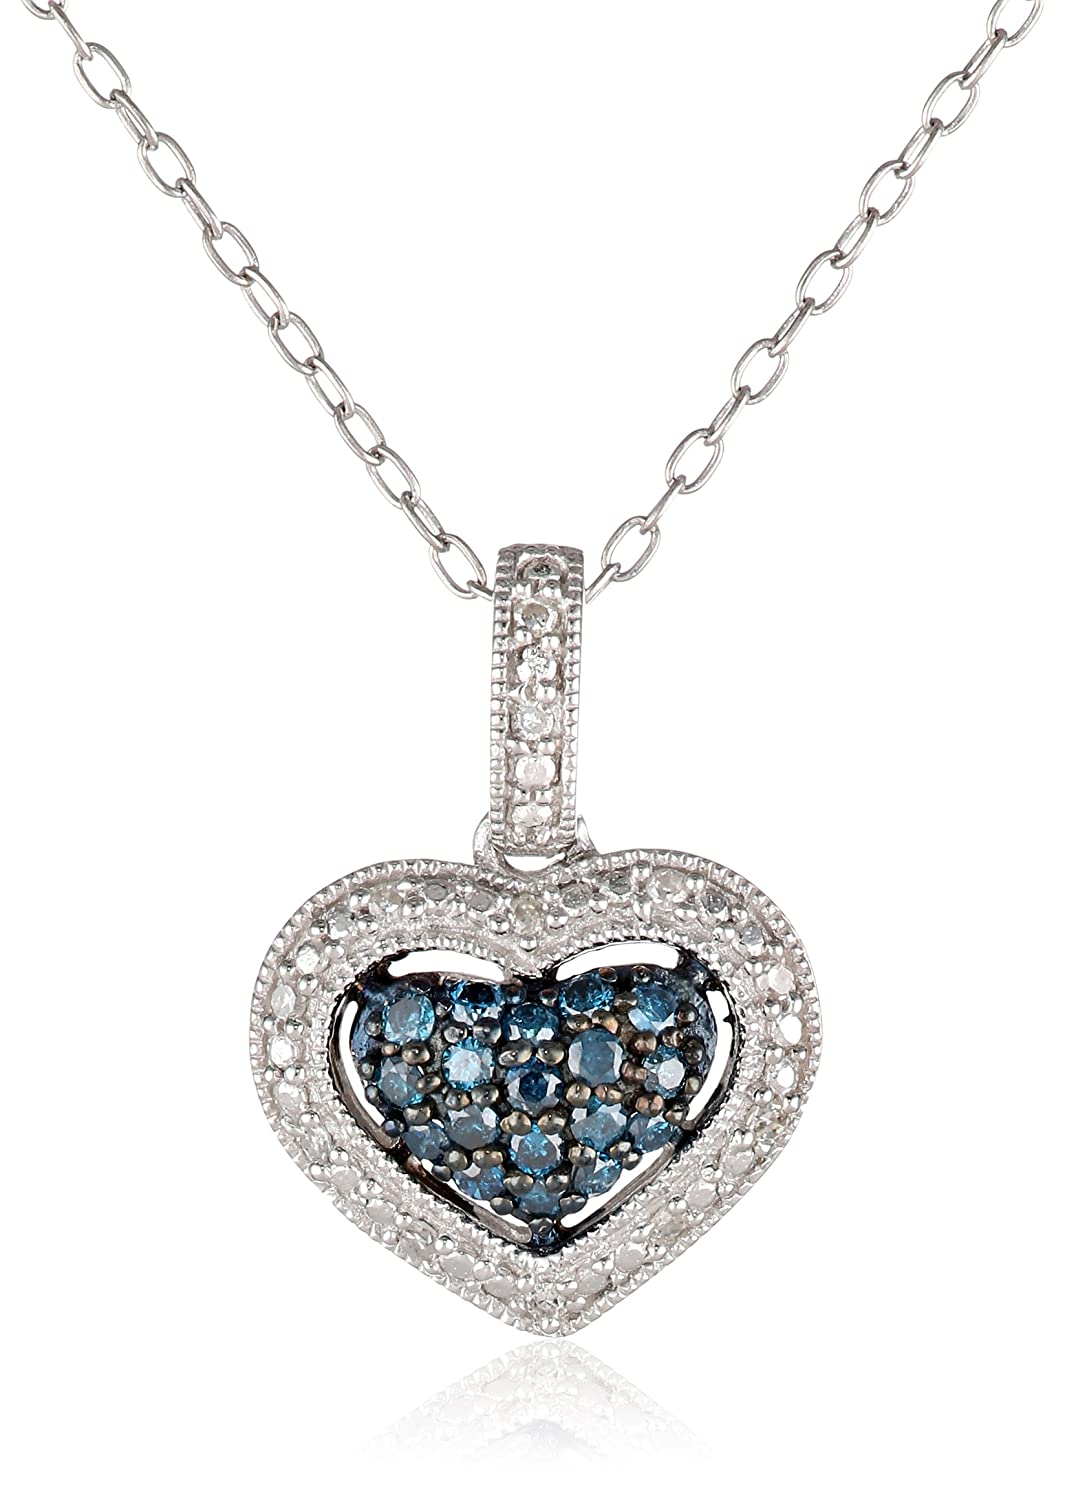 Black Rhodium Sterling Silver Blue and White Diamond Heart Pendant Necklace (0.25 Cttw, G-H Color, I1-I2 Clarity), 18""